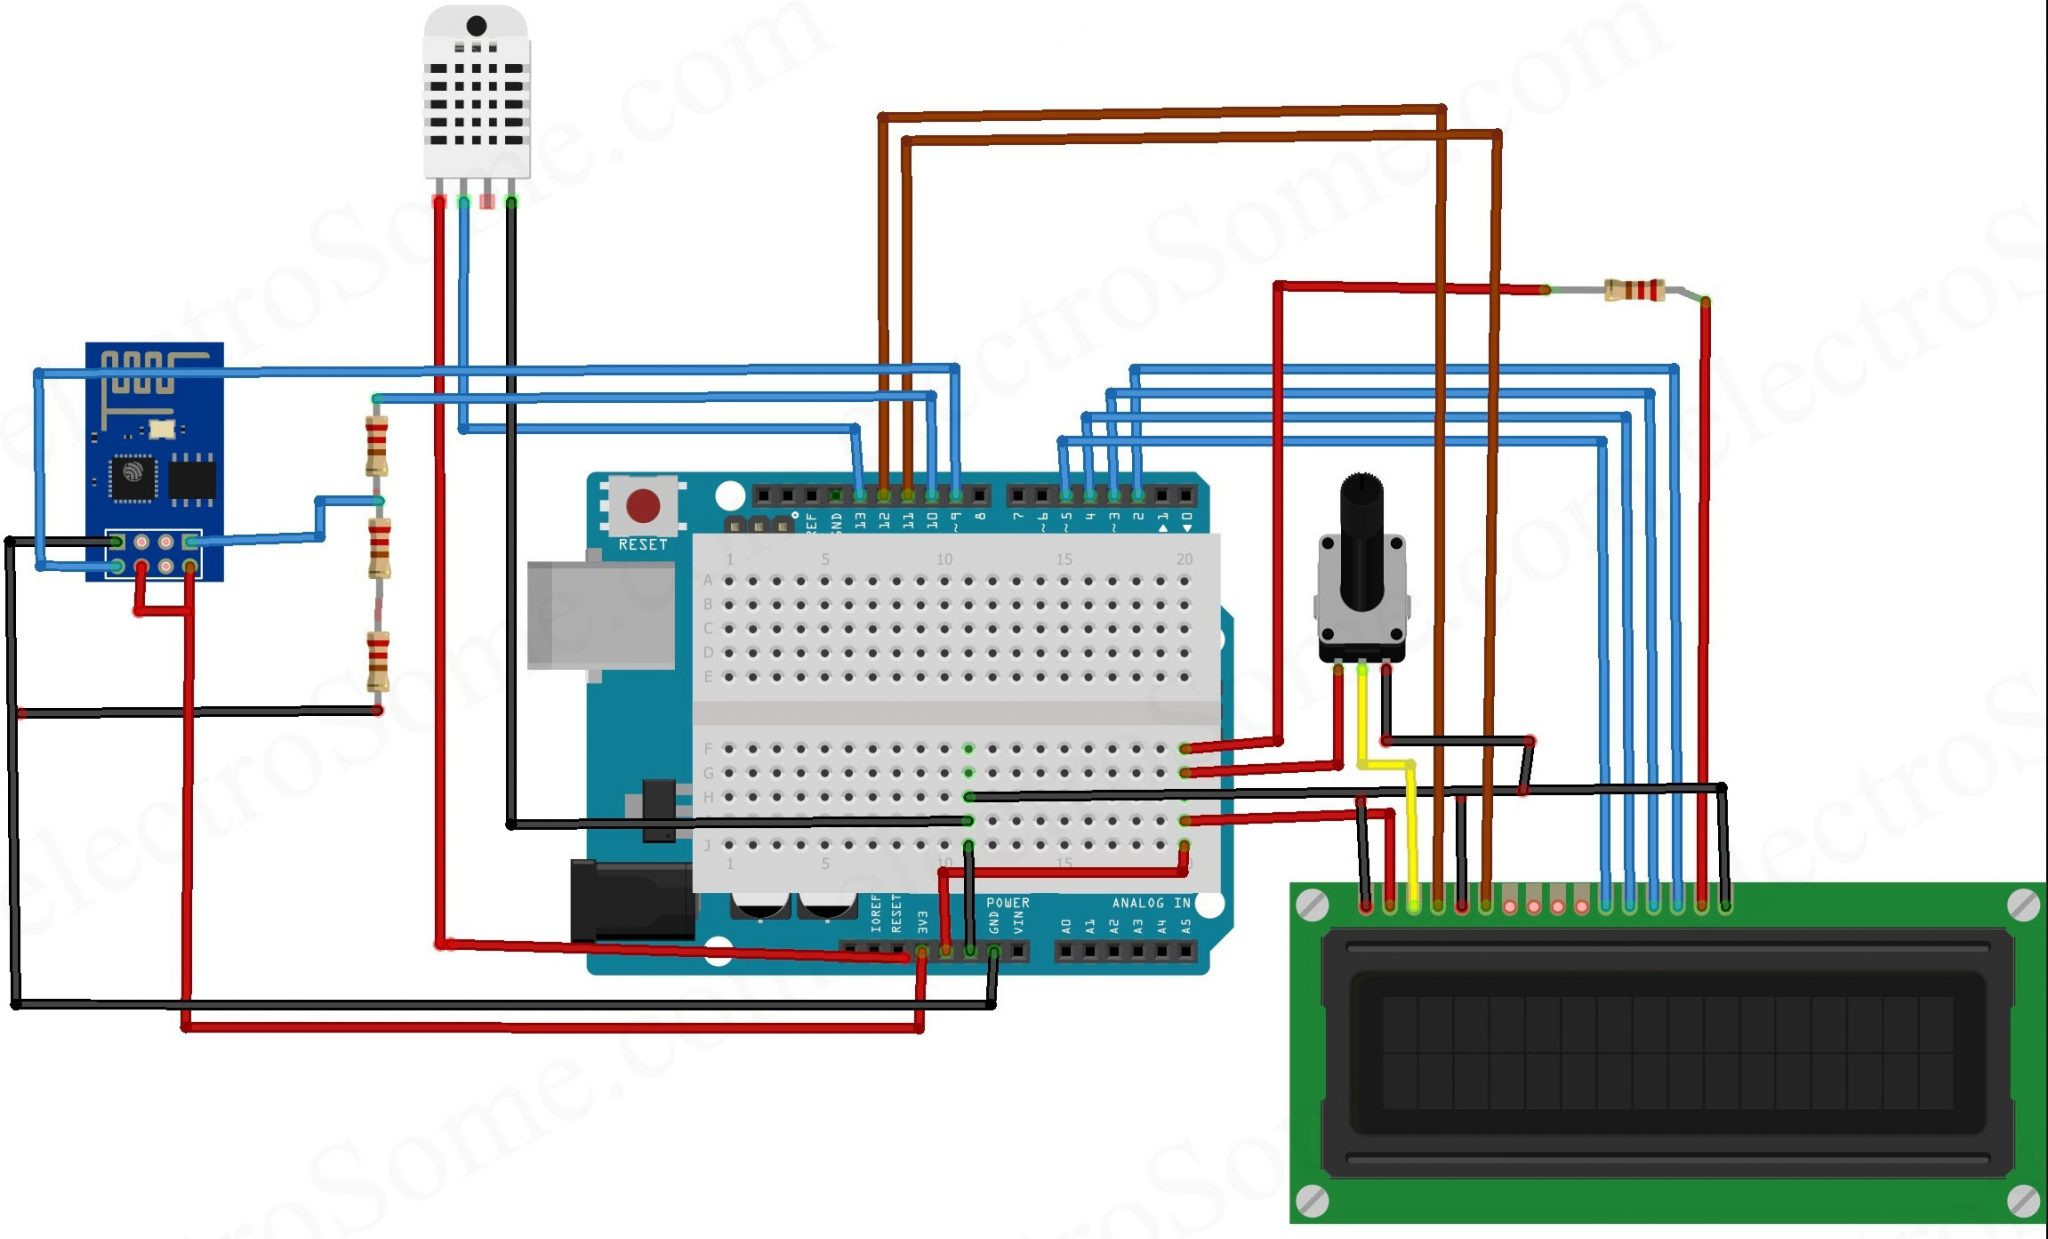 Iot Data Logger Using Arduino And Esp8266 Wifi Module Door Bell Circuit Transistor Besides Ultrasonic Sensor Diagram Explanation